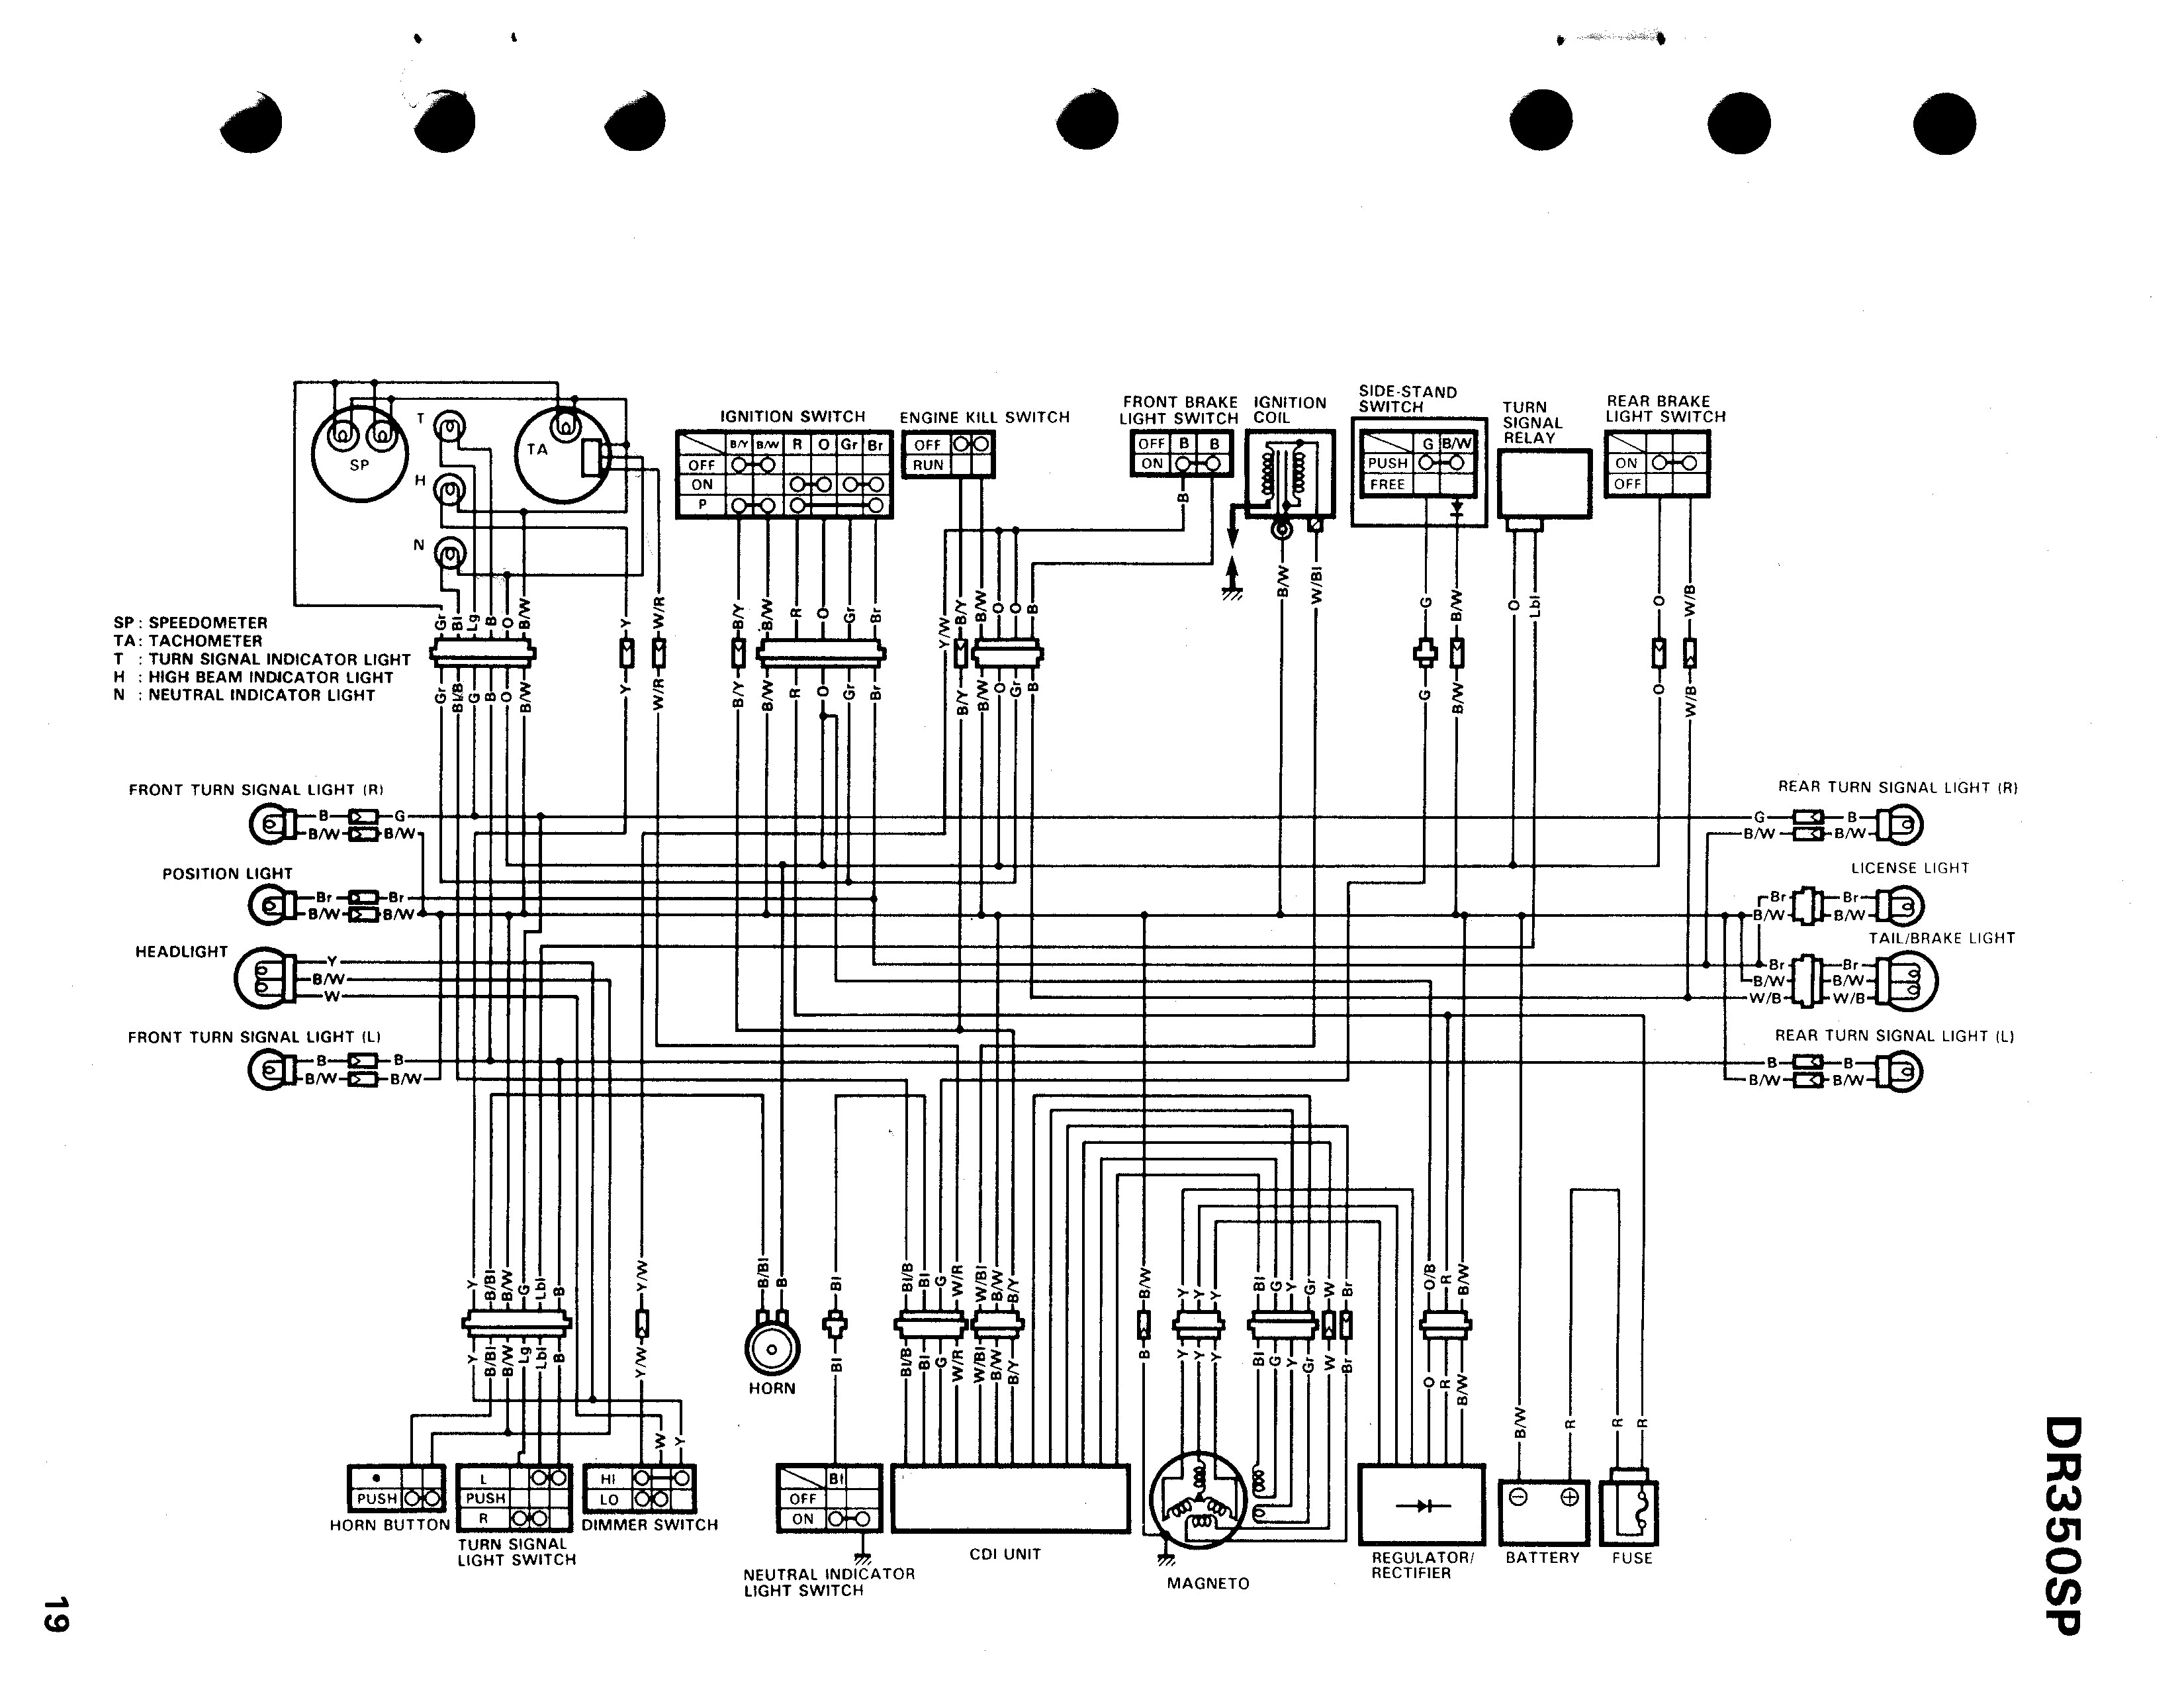 2006 sv650 wiring diagram 360 degree circle suzuki dr 200 28 images